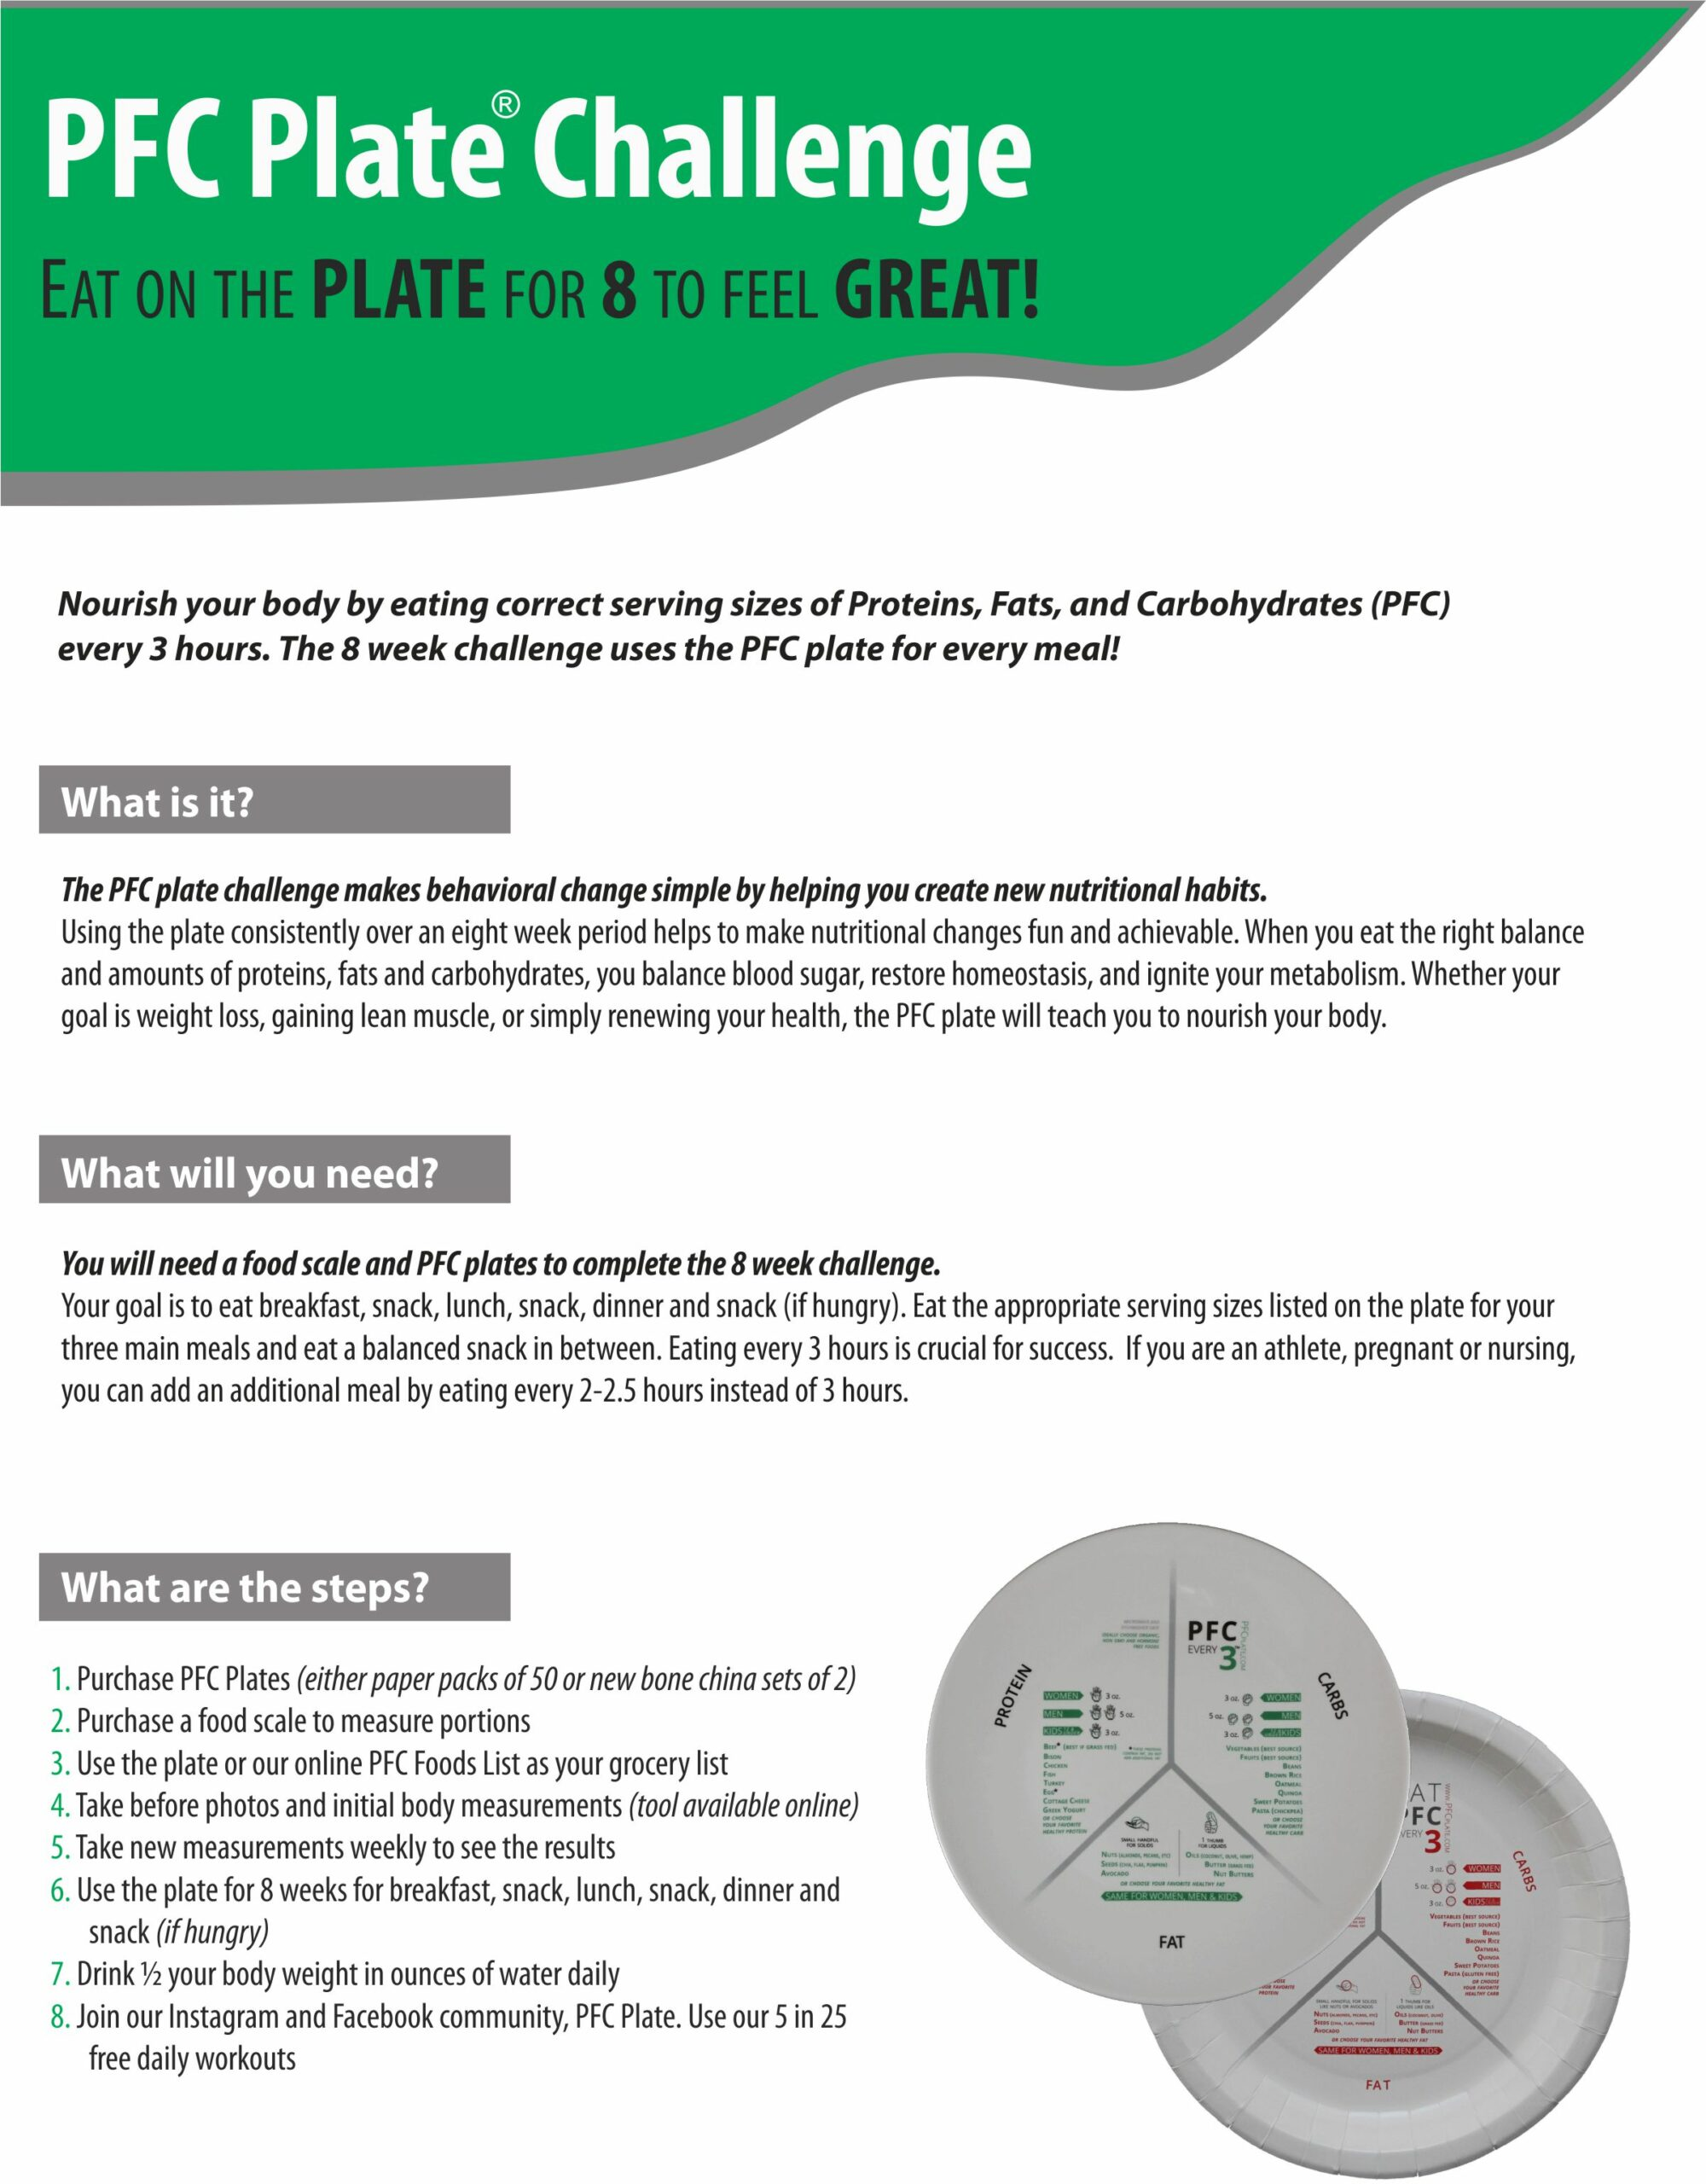 The steps to eating PFC for 8 weeks to change nutrition habits and improve health